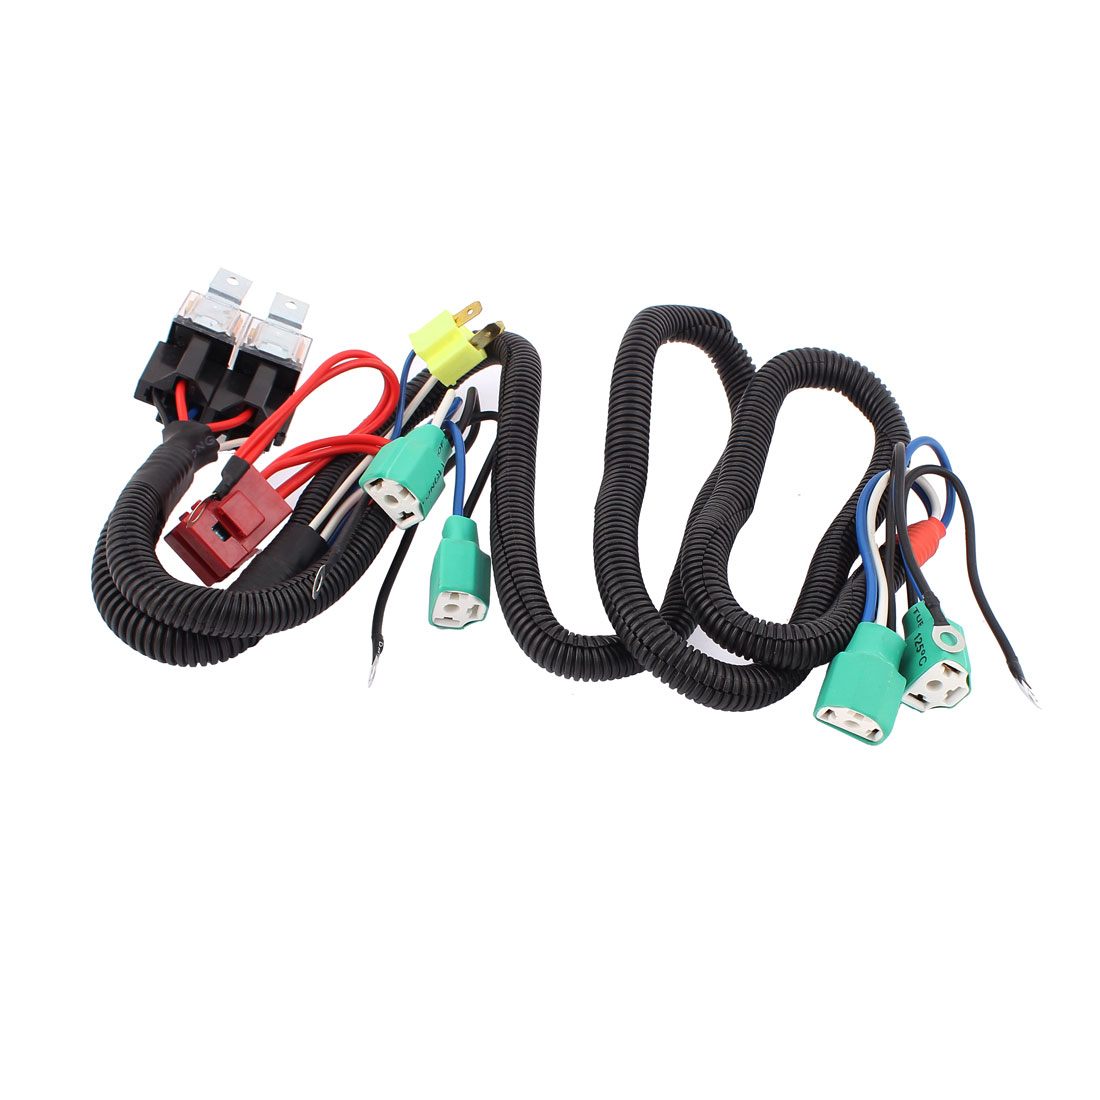 Car 80A Fuse 4 H4 HID Headlight Fog Bulb Female Adapter Relay Harness Wire